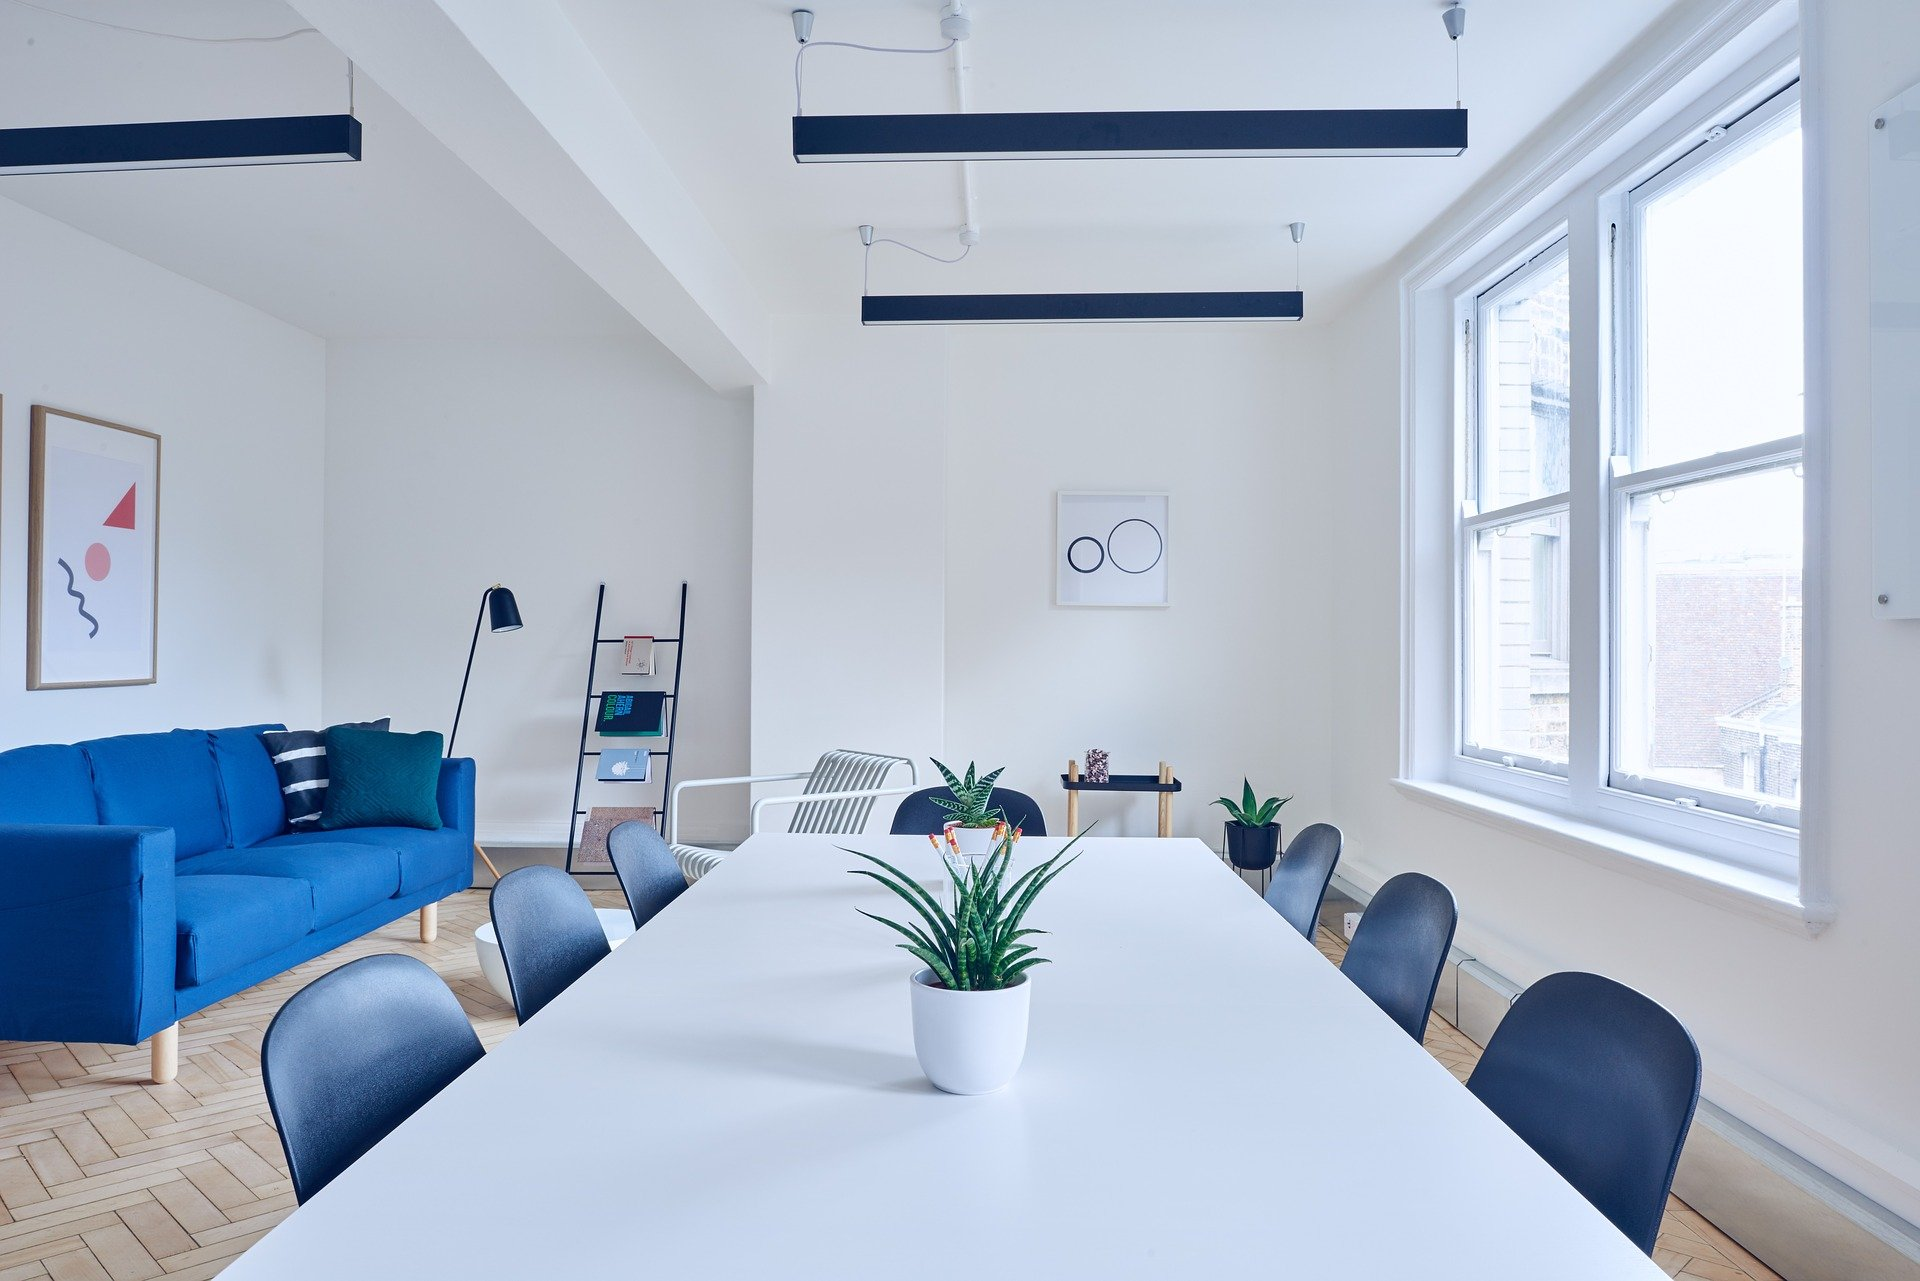 13 tips to help achieve goals in your meeting room